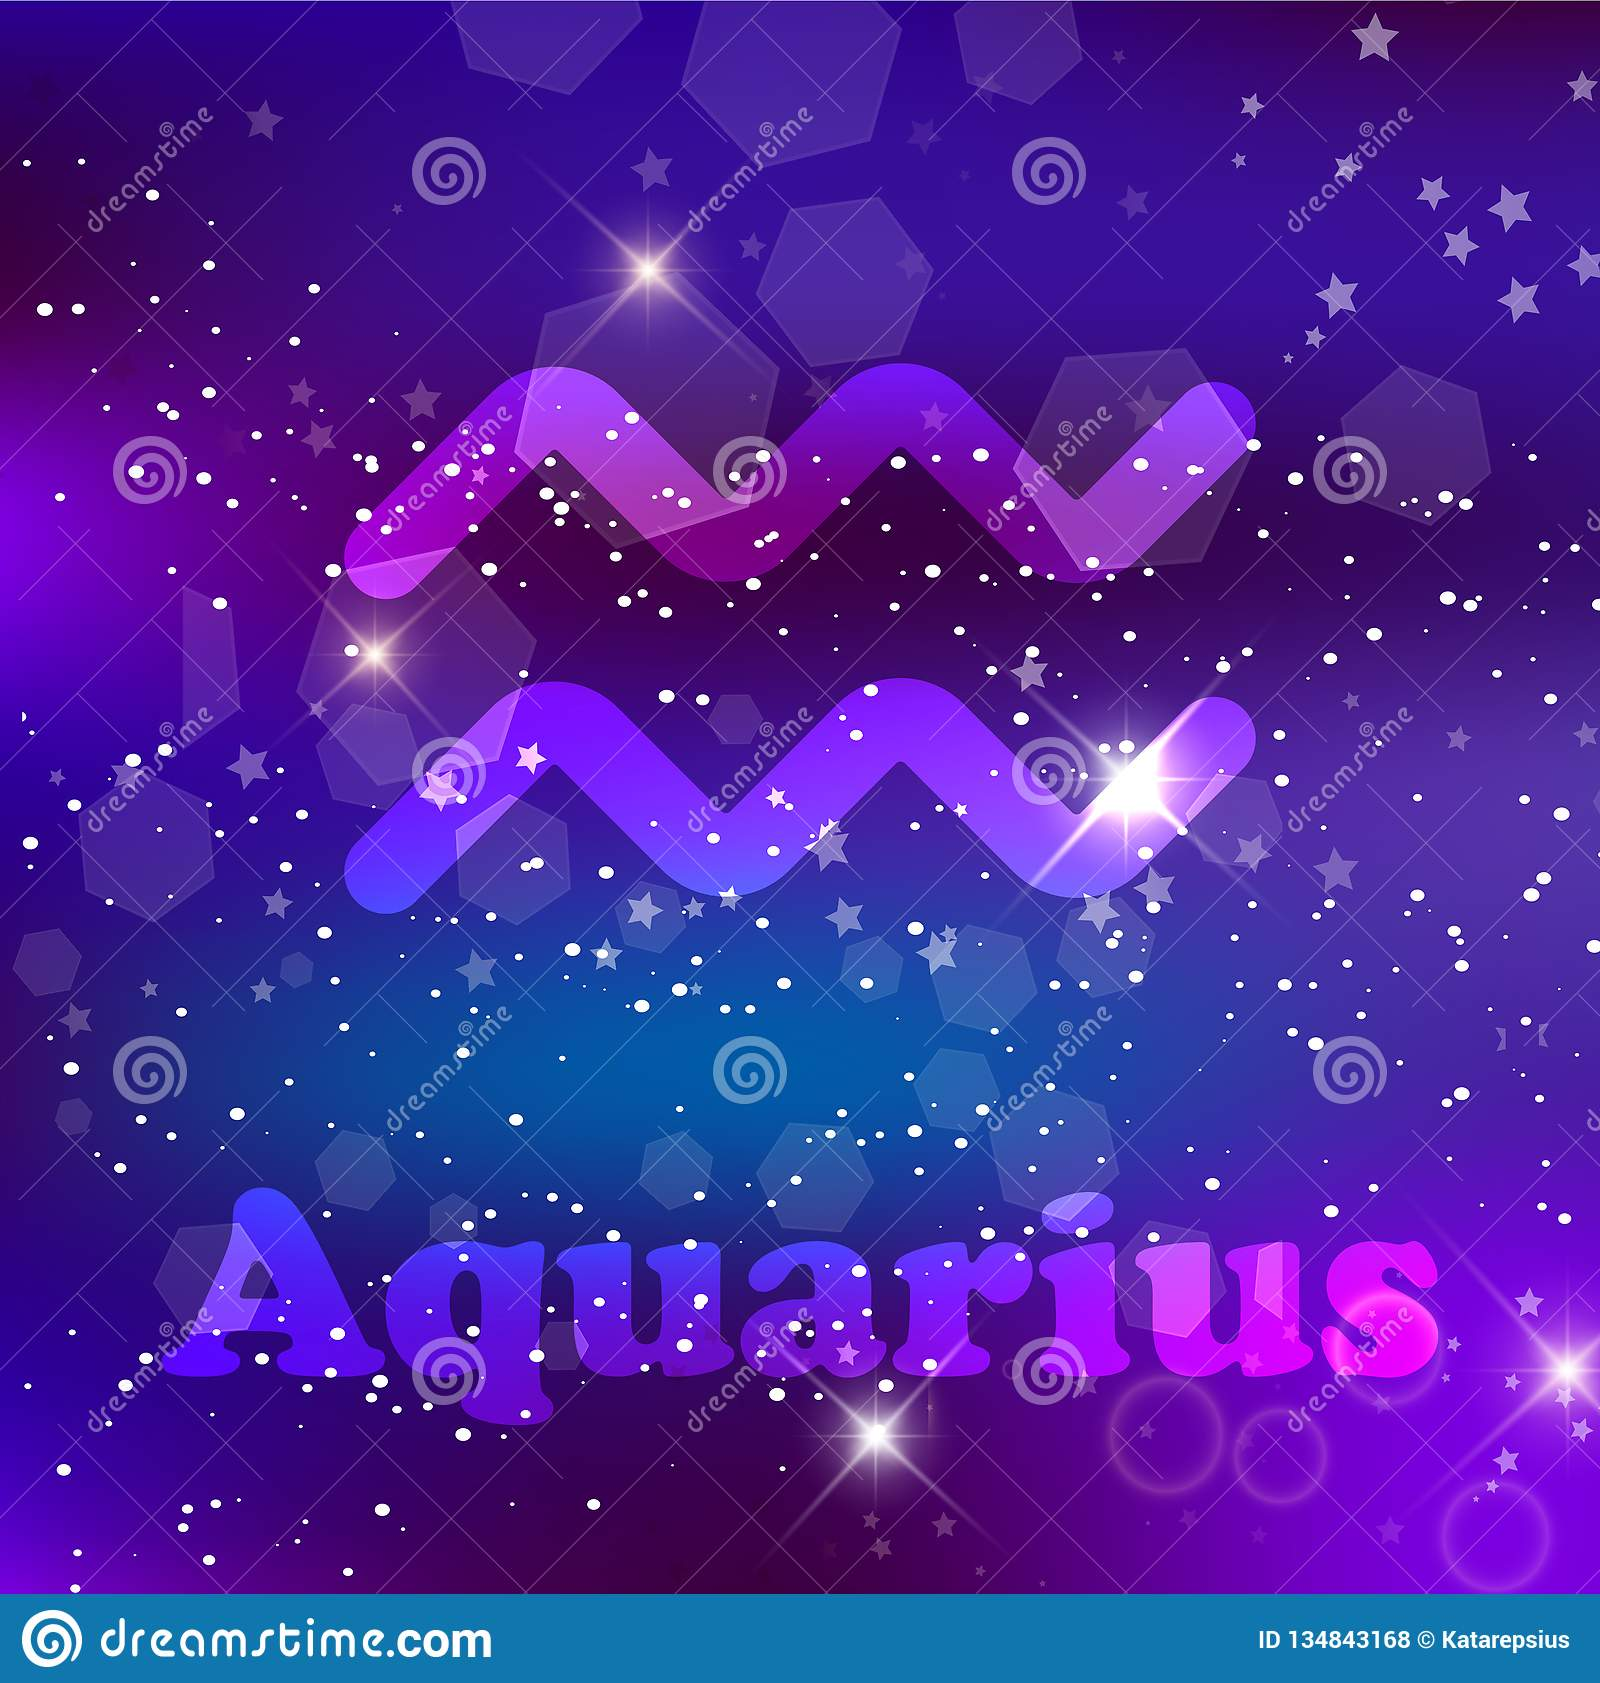 Aquarius Zodiac Sign On A Cosmic Purple Background With